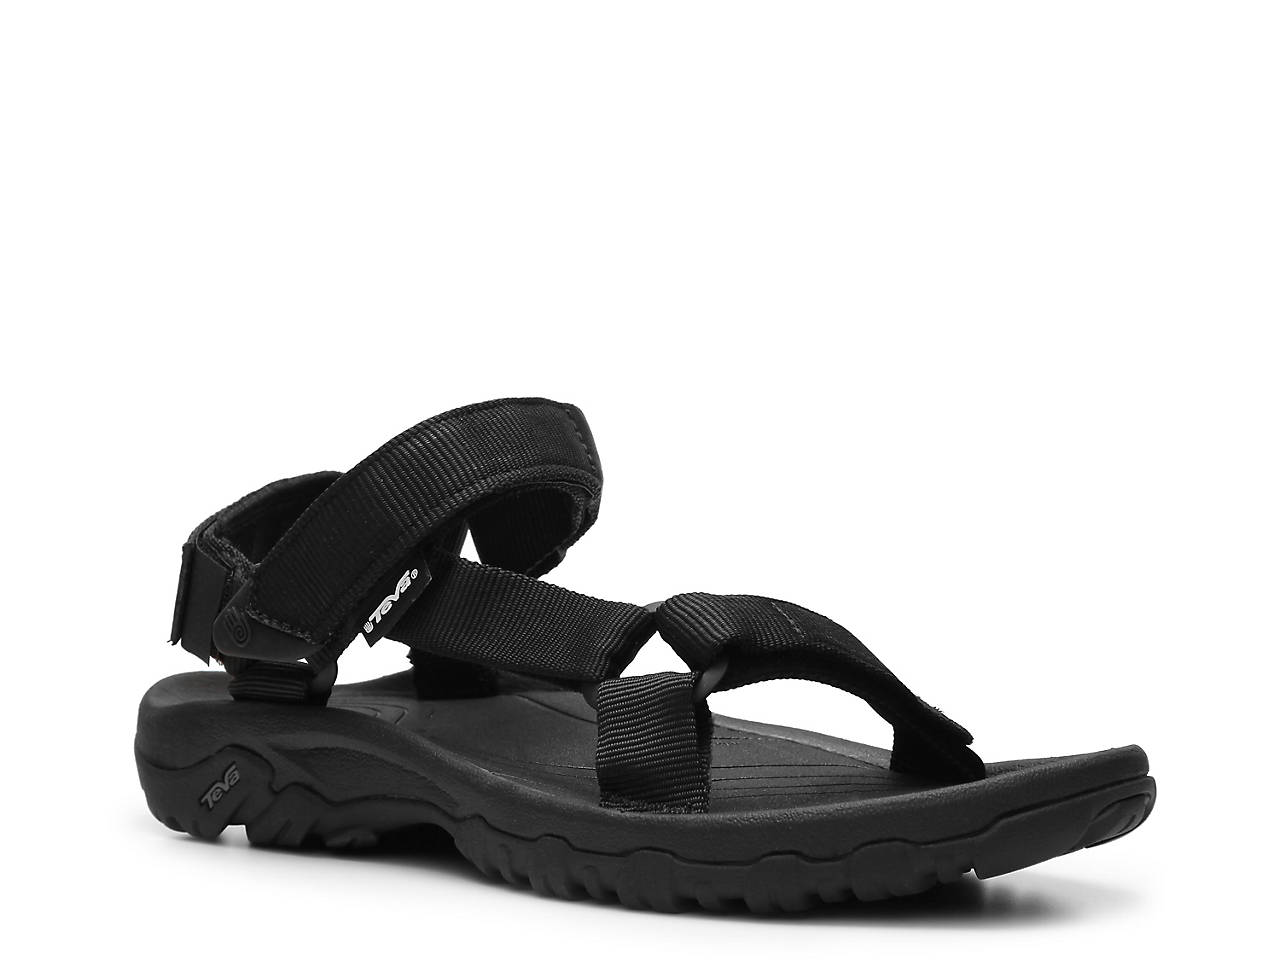 0cbaa7382 Teva Hurricane XLT Sandal Men s Shoes